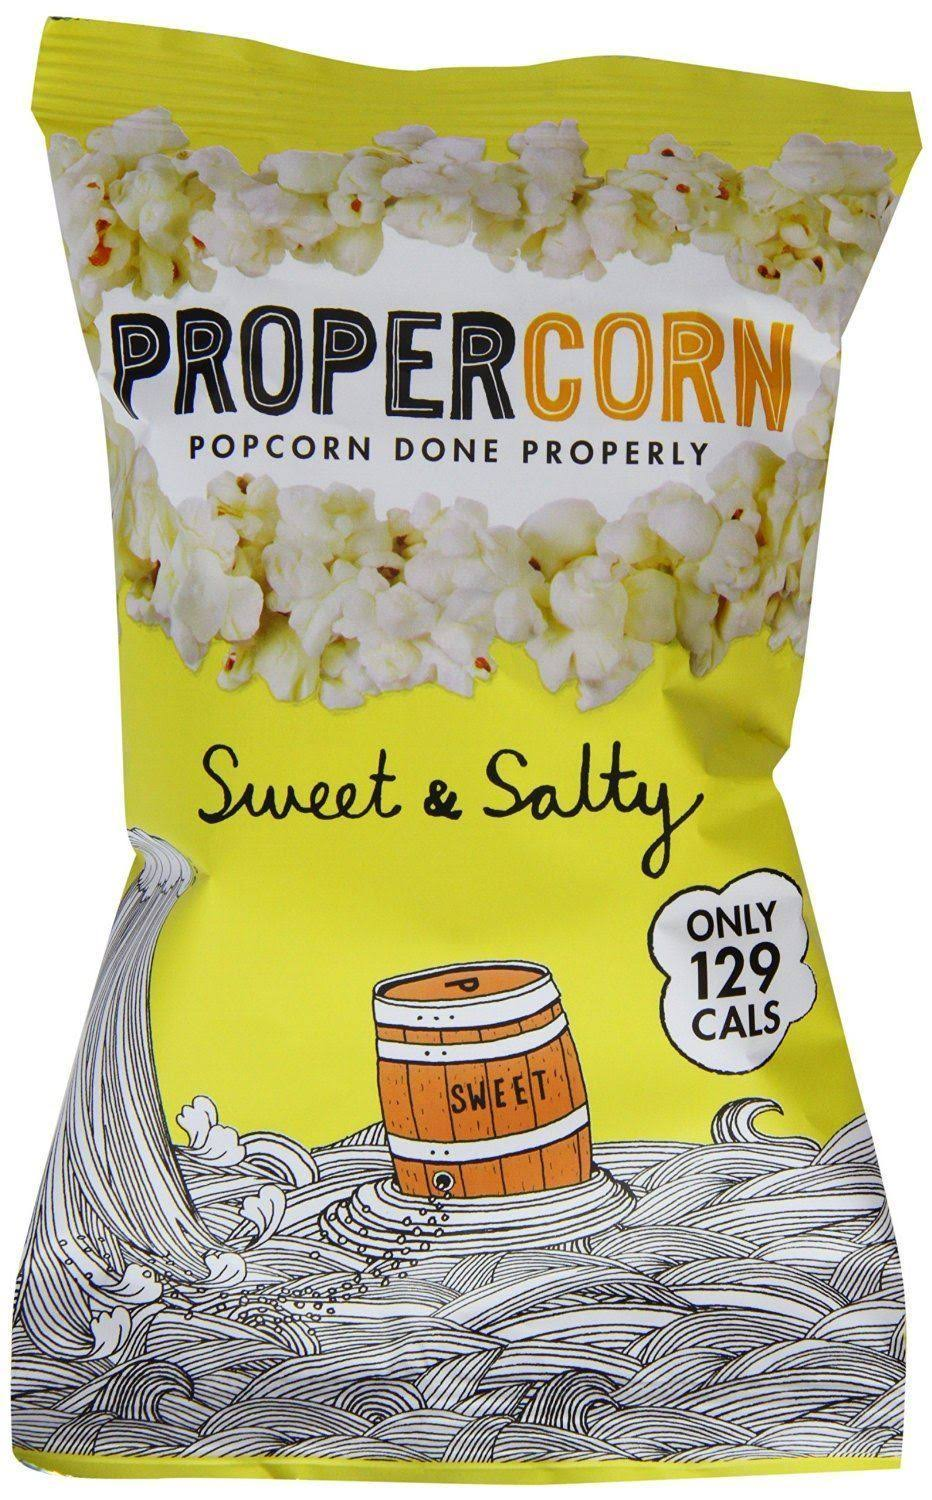 Propercorn Popcorn - Sweet and Salty, 30g